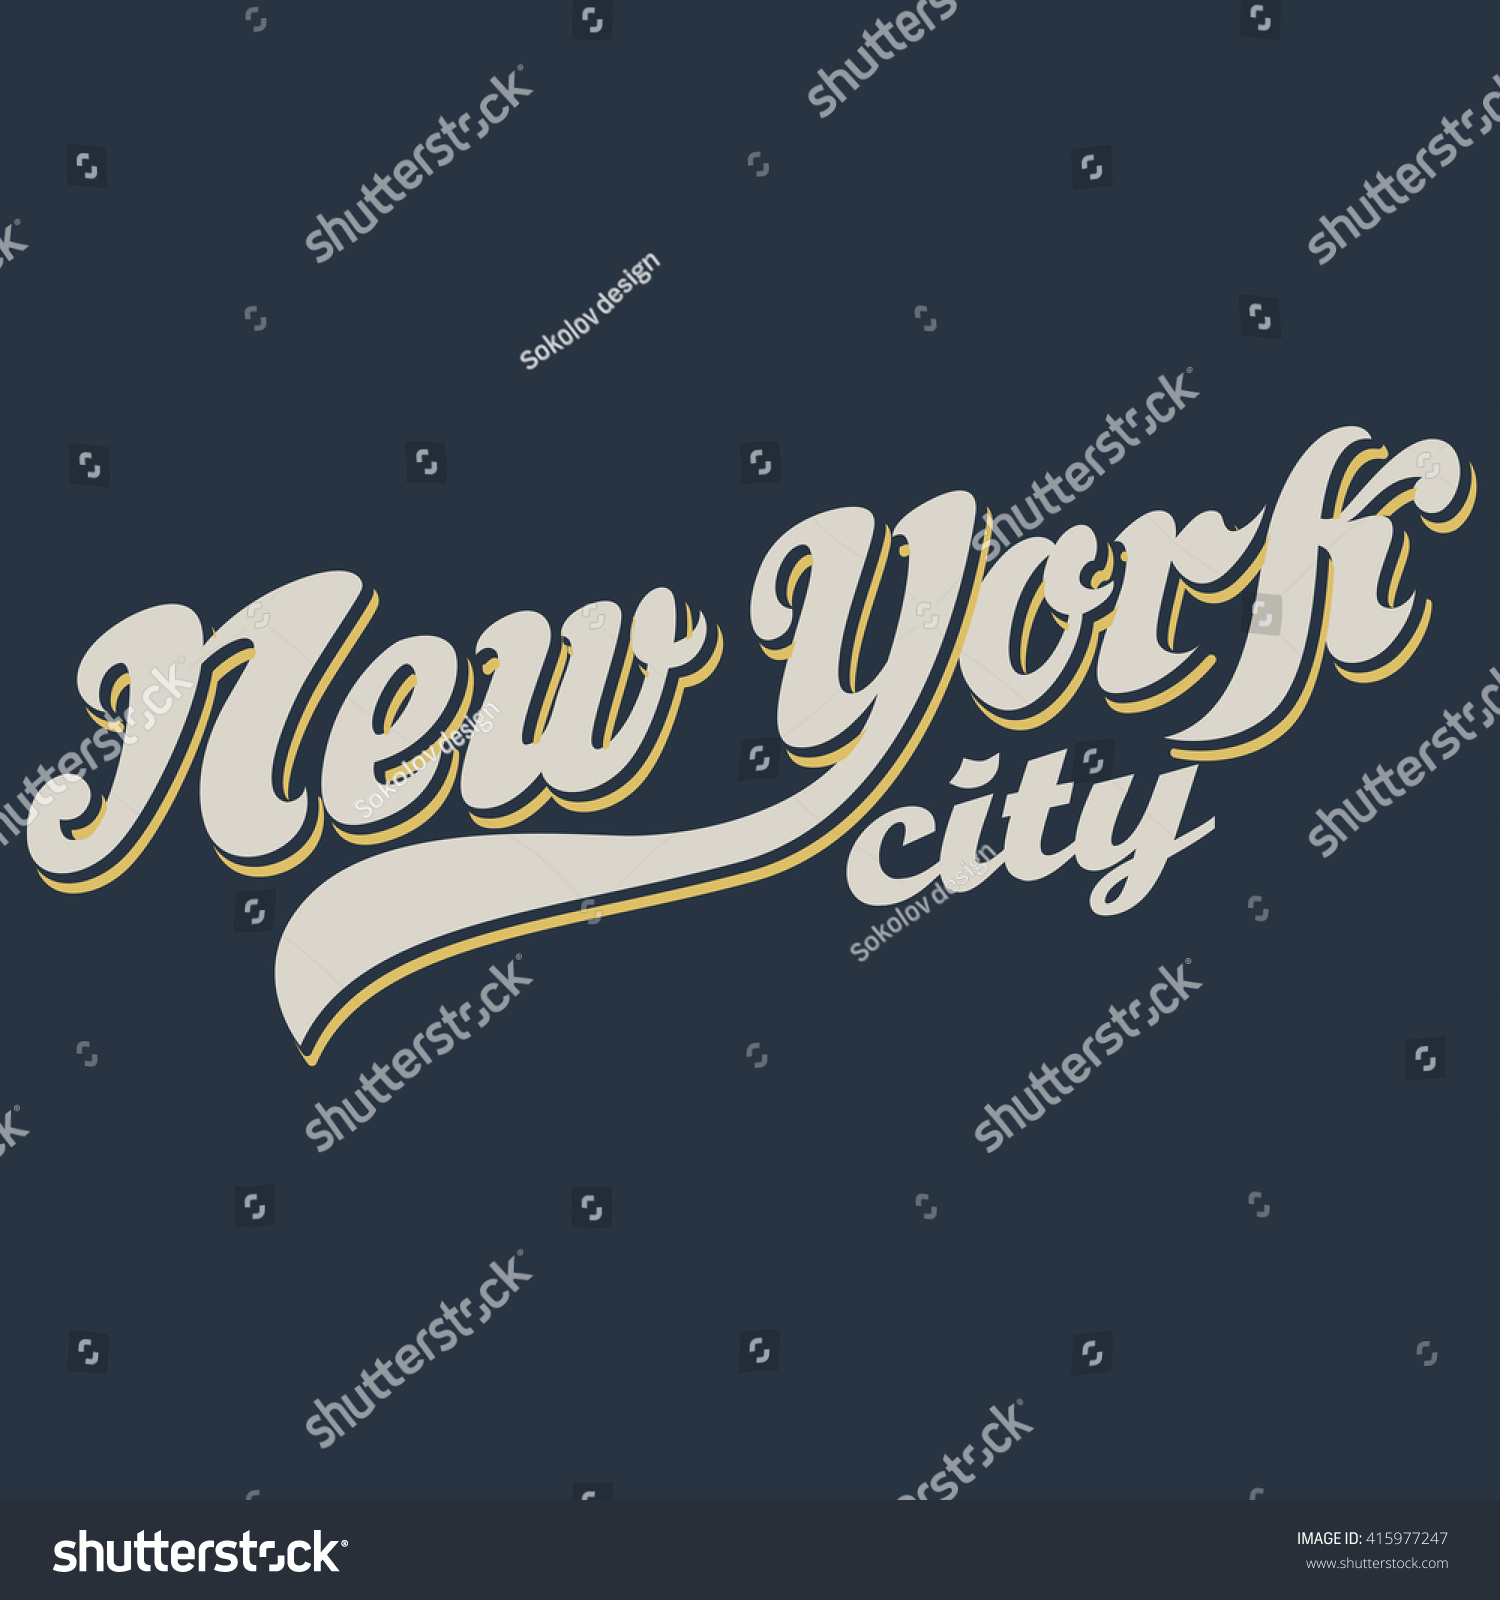 f983837c Vintage New York calligraphic handwritten t-shirt apparel fashion design  print with distressed and textured look. - Vector